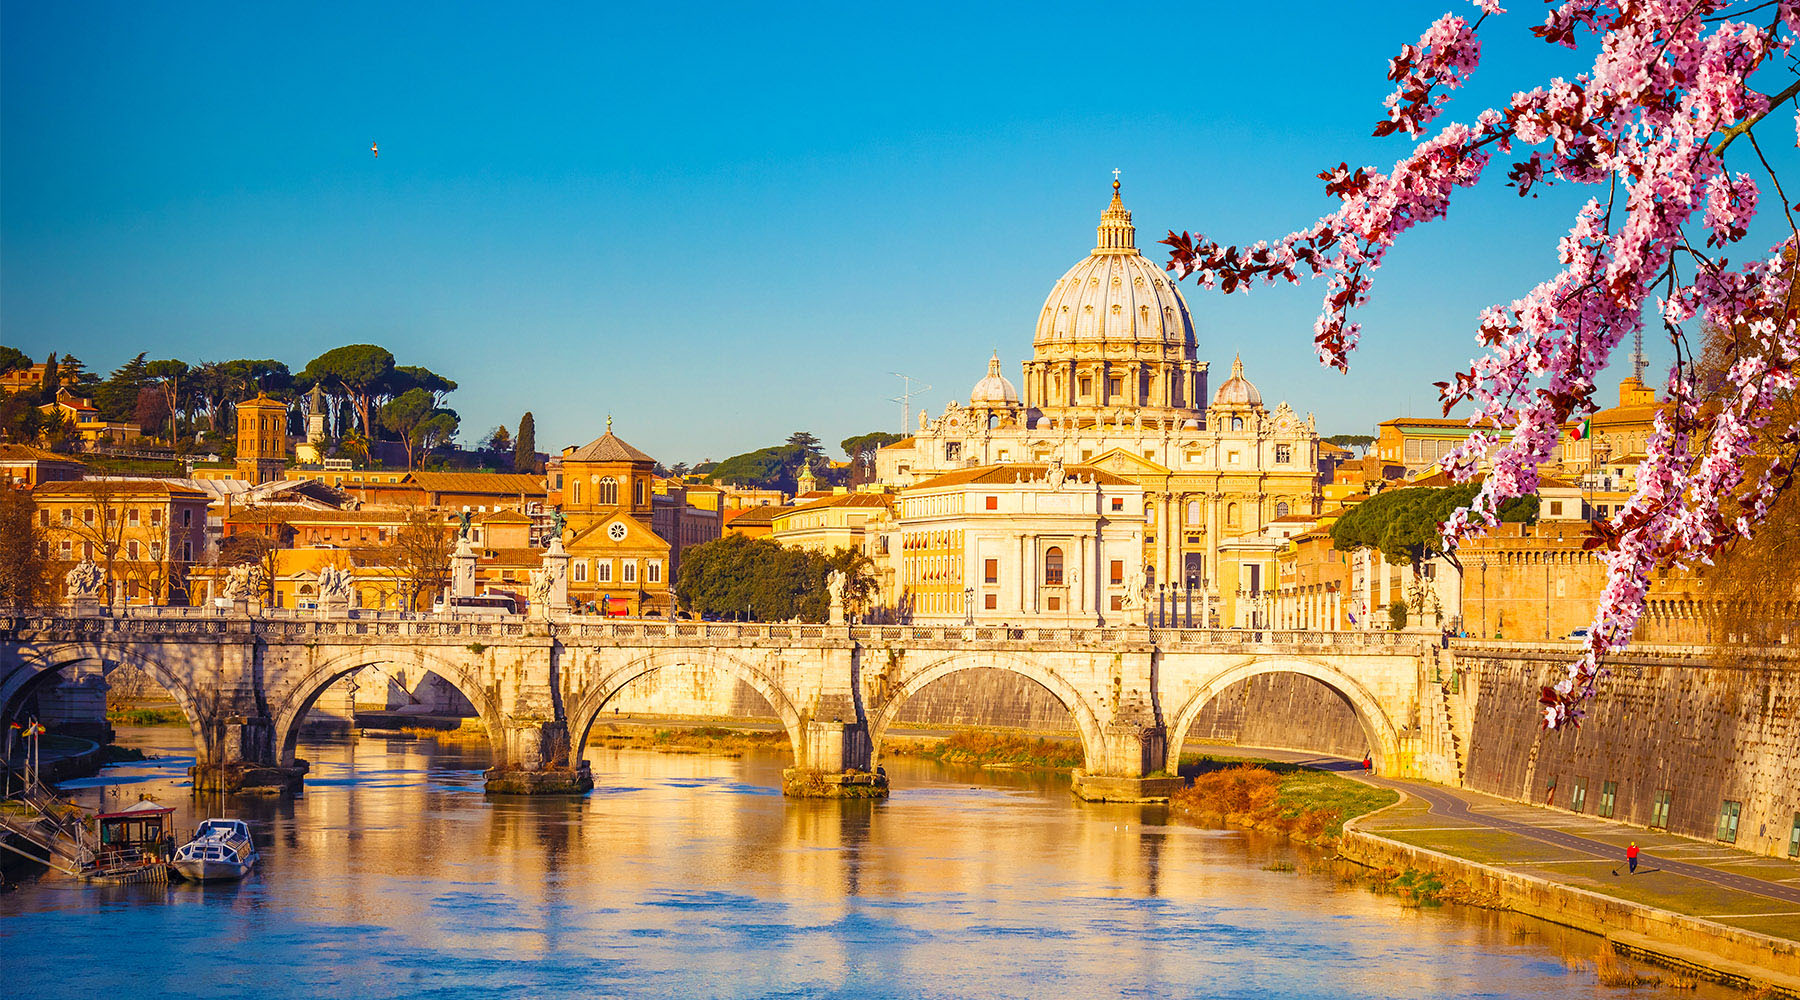 7-Night Italy Intensive Voyage & 3-Night Post Rome Stay